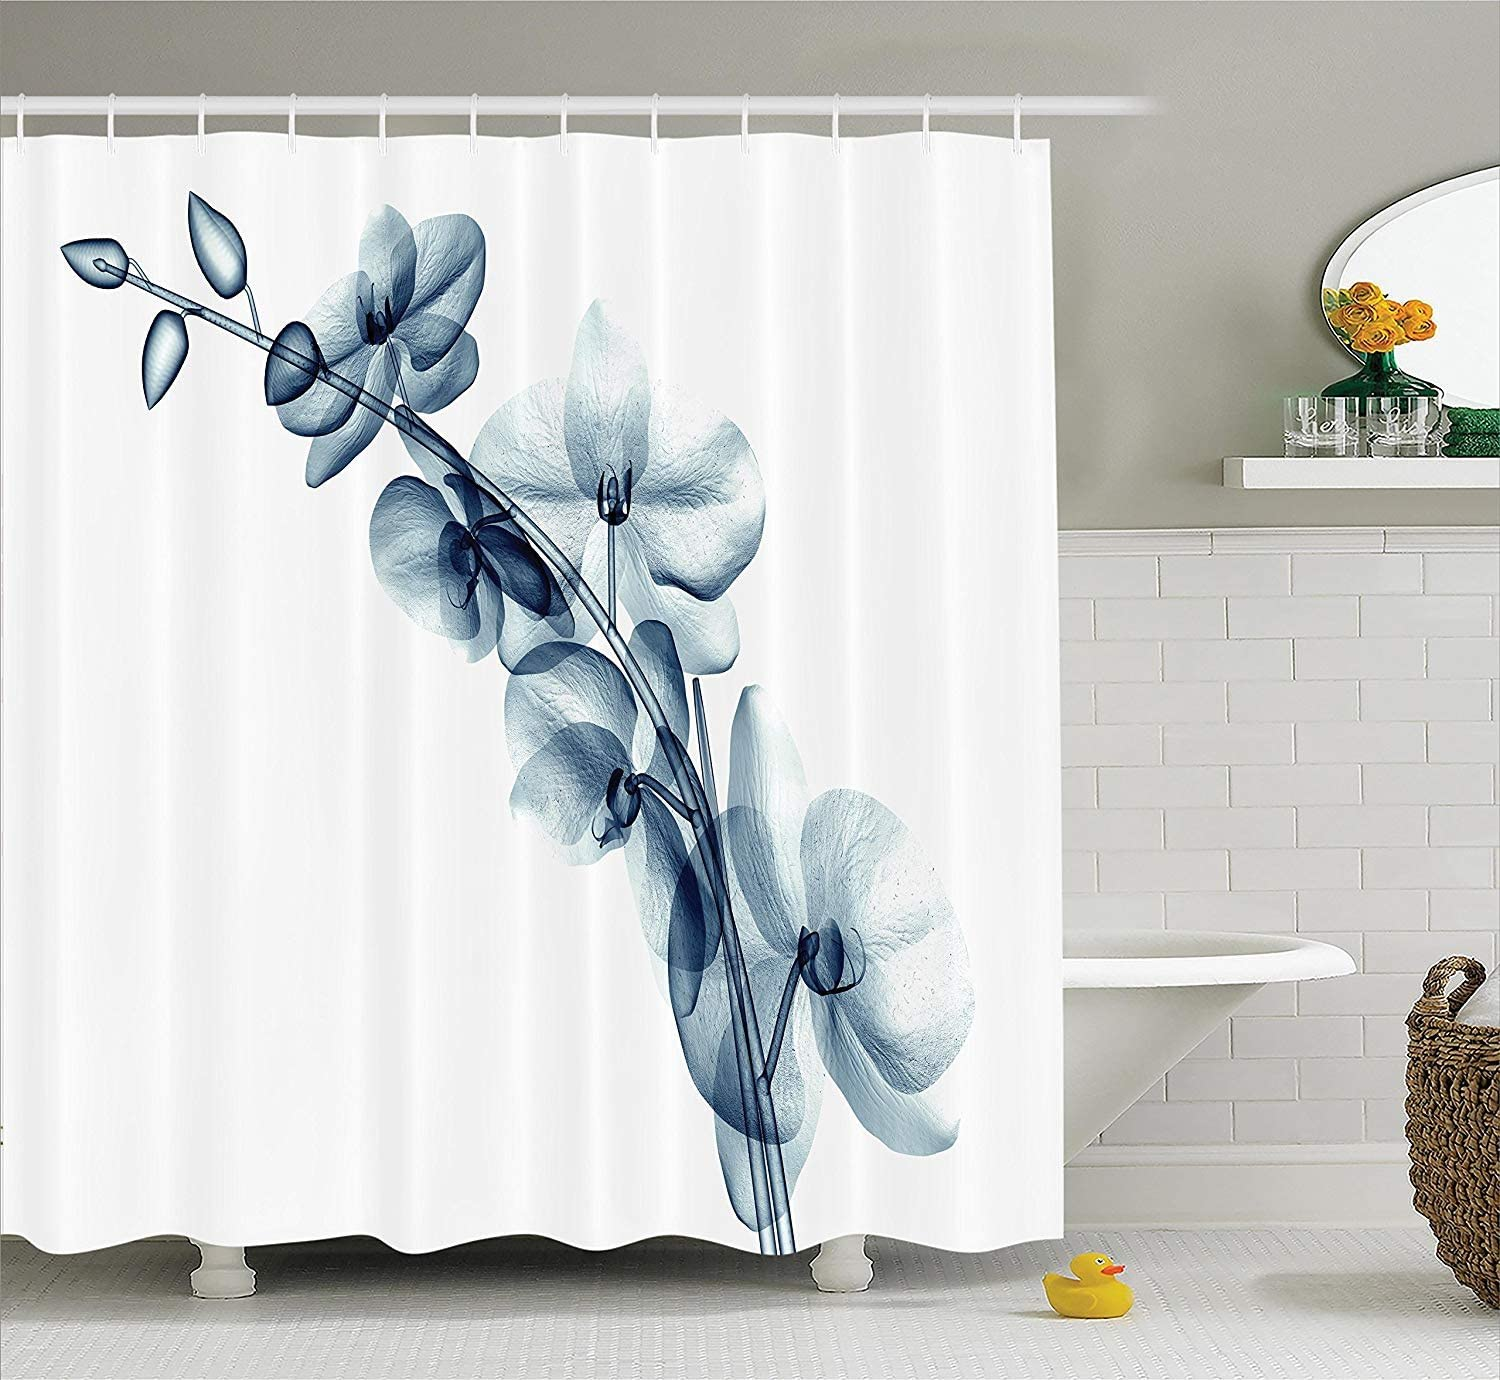 "Ambesonne Flower Shower Curtain, Contemporary X-ray Illustration of Orchide Flower Unseen Nature Picture, Cloth Fabric Bathroom Decor Set with Hooks, 75"" Long, White Teal"